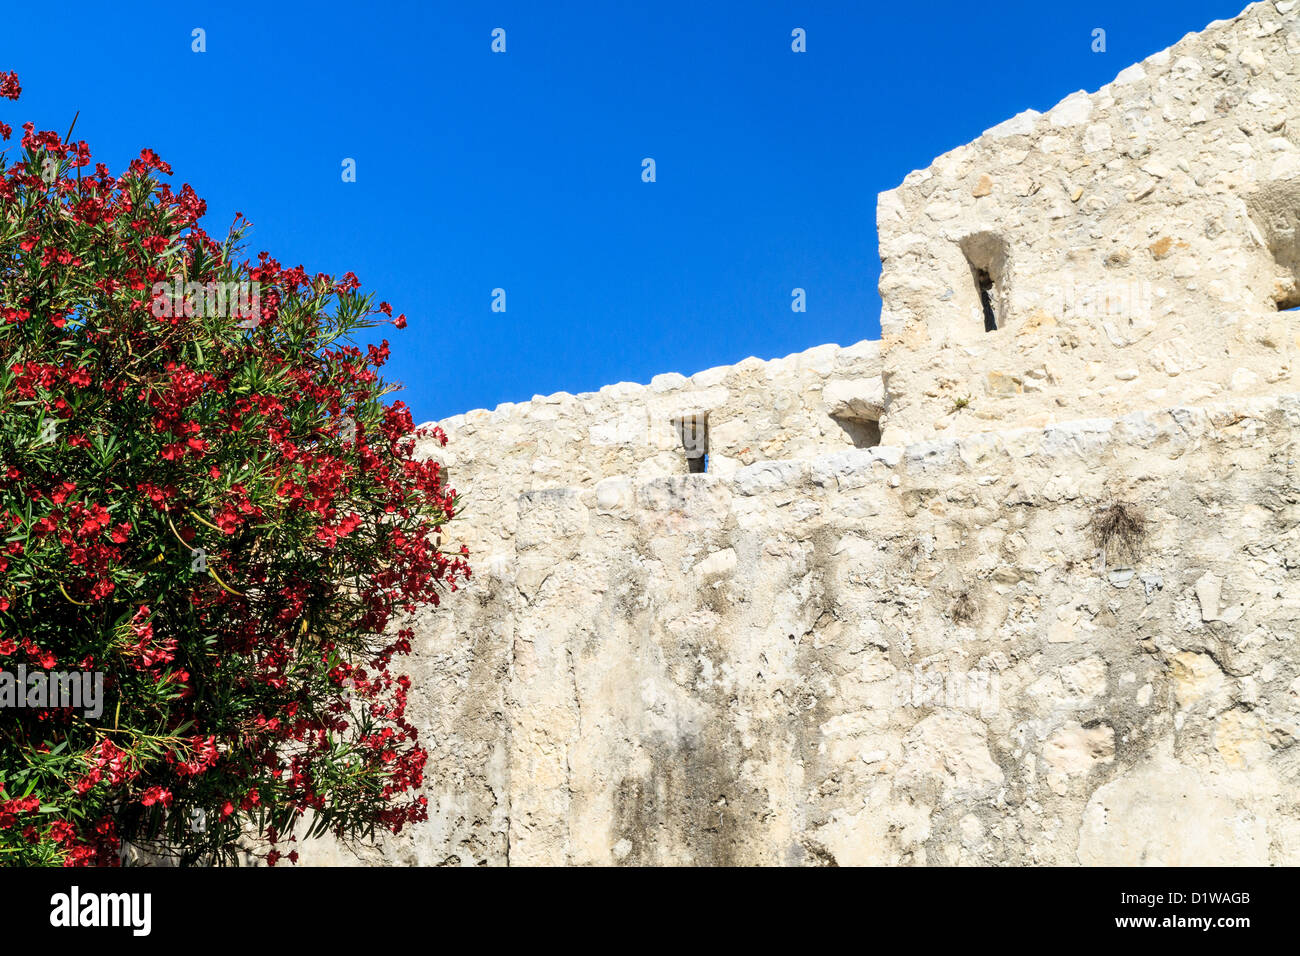 Medieval City Wall / Fortifications, Provence, France - Stock Image